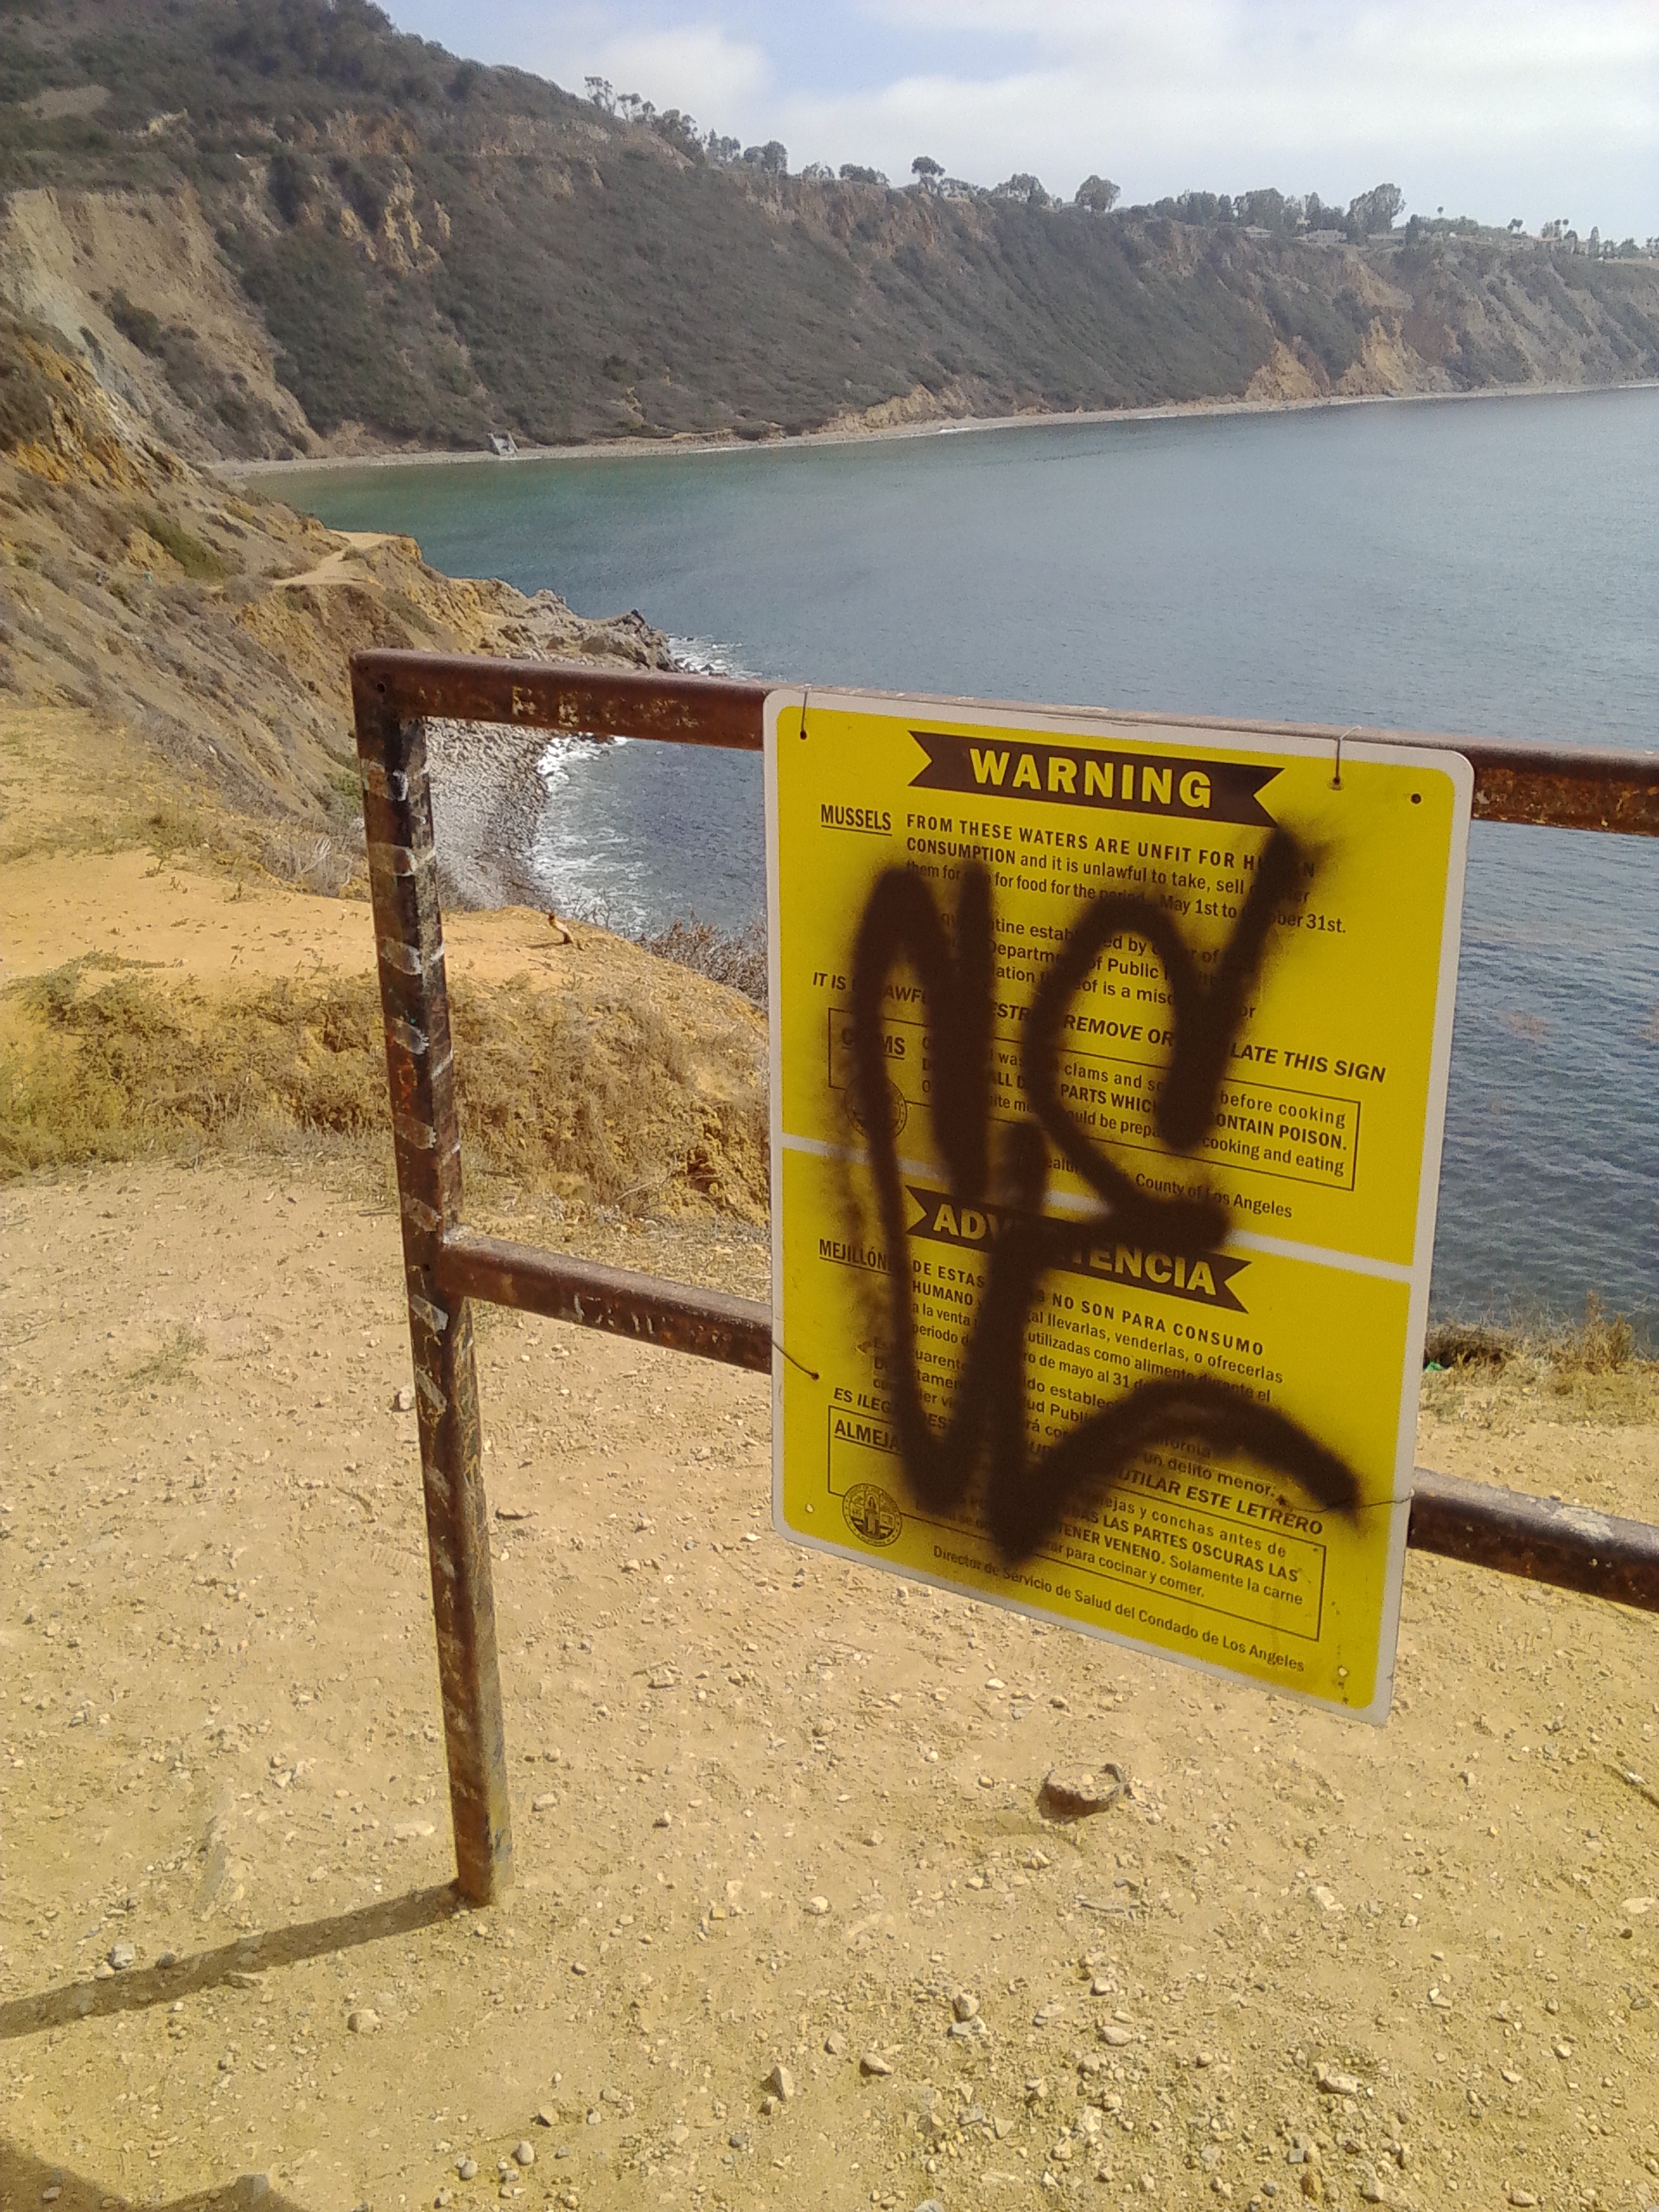 PVE Bluff Cove Mussels Sign Graffiti 06-21-2014